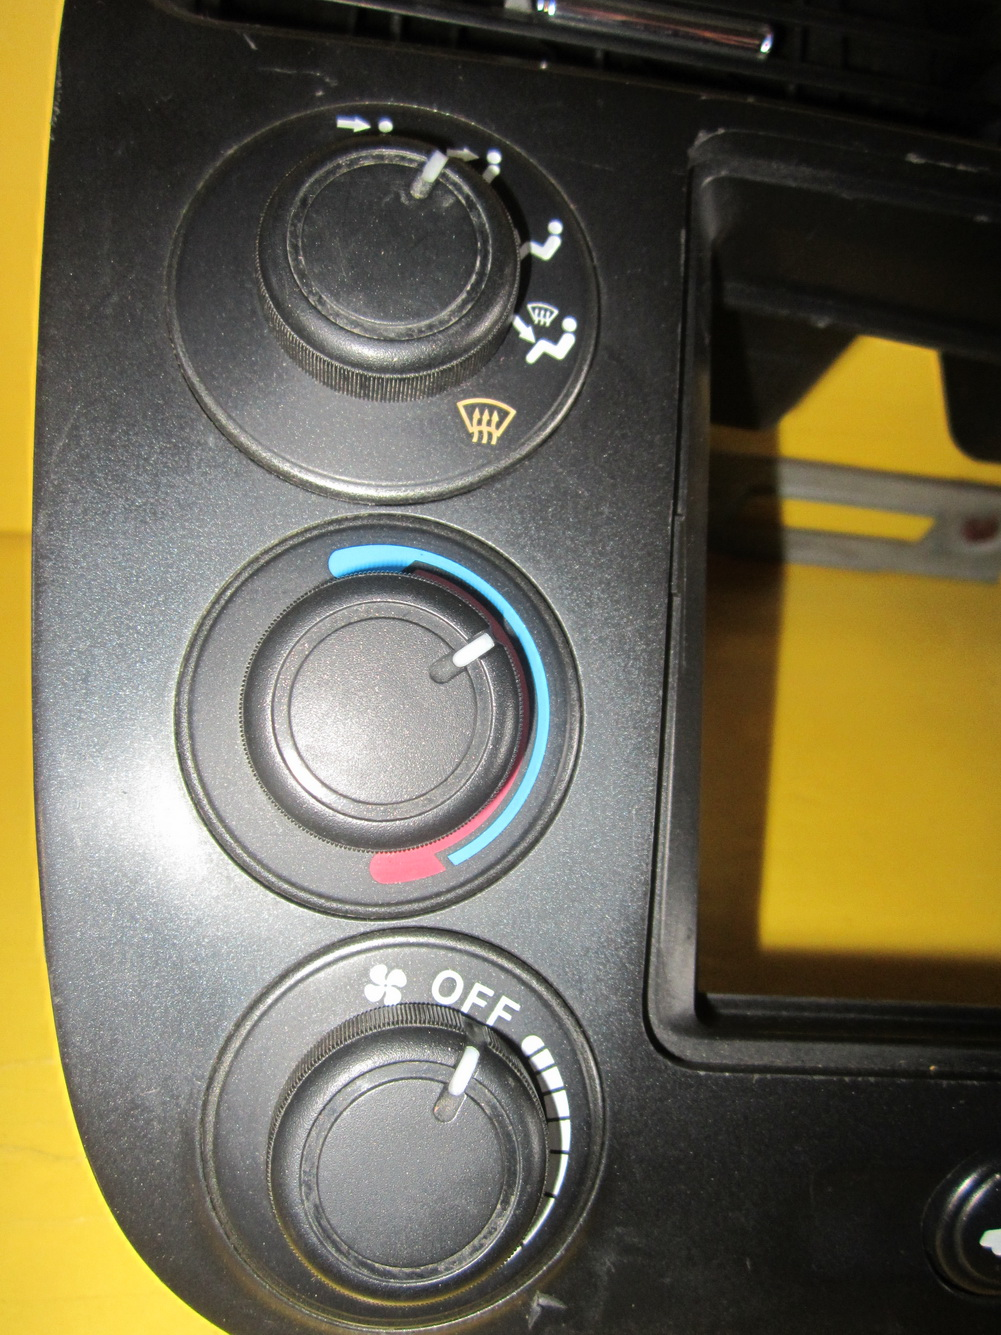 Mercedes Benz Oem Parts >> 2001 2002 2003 2004 2005 HONDA CIVIC CLIMATE CONTROL RADIO FACE PLATE BEZEL OEM: Used Auto Parts ...